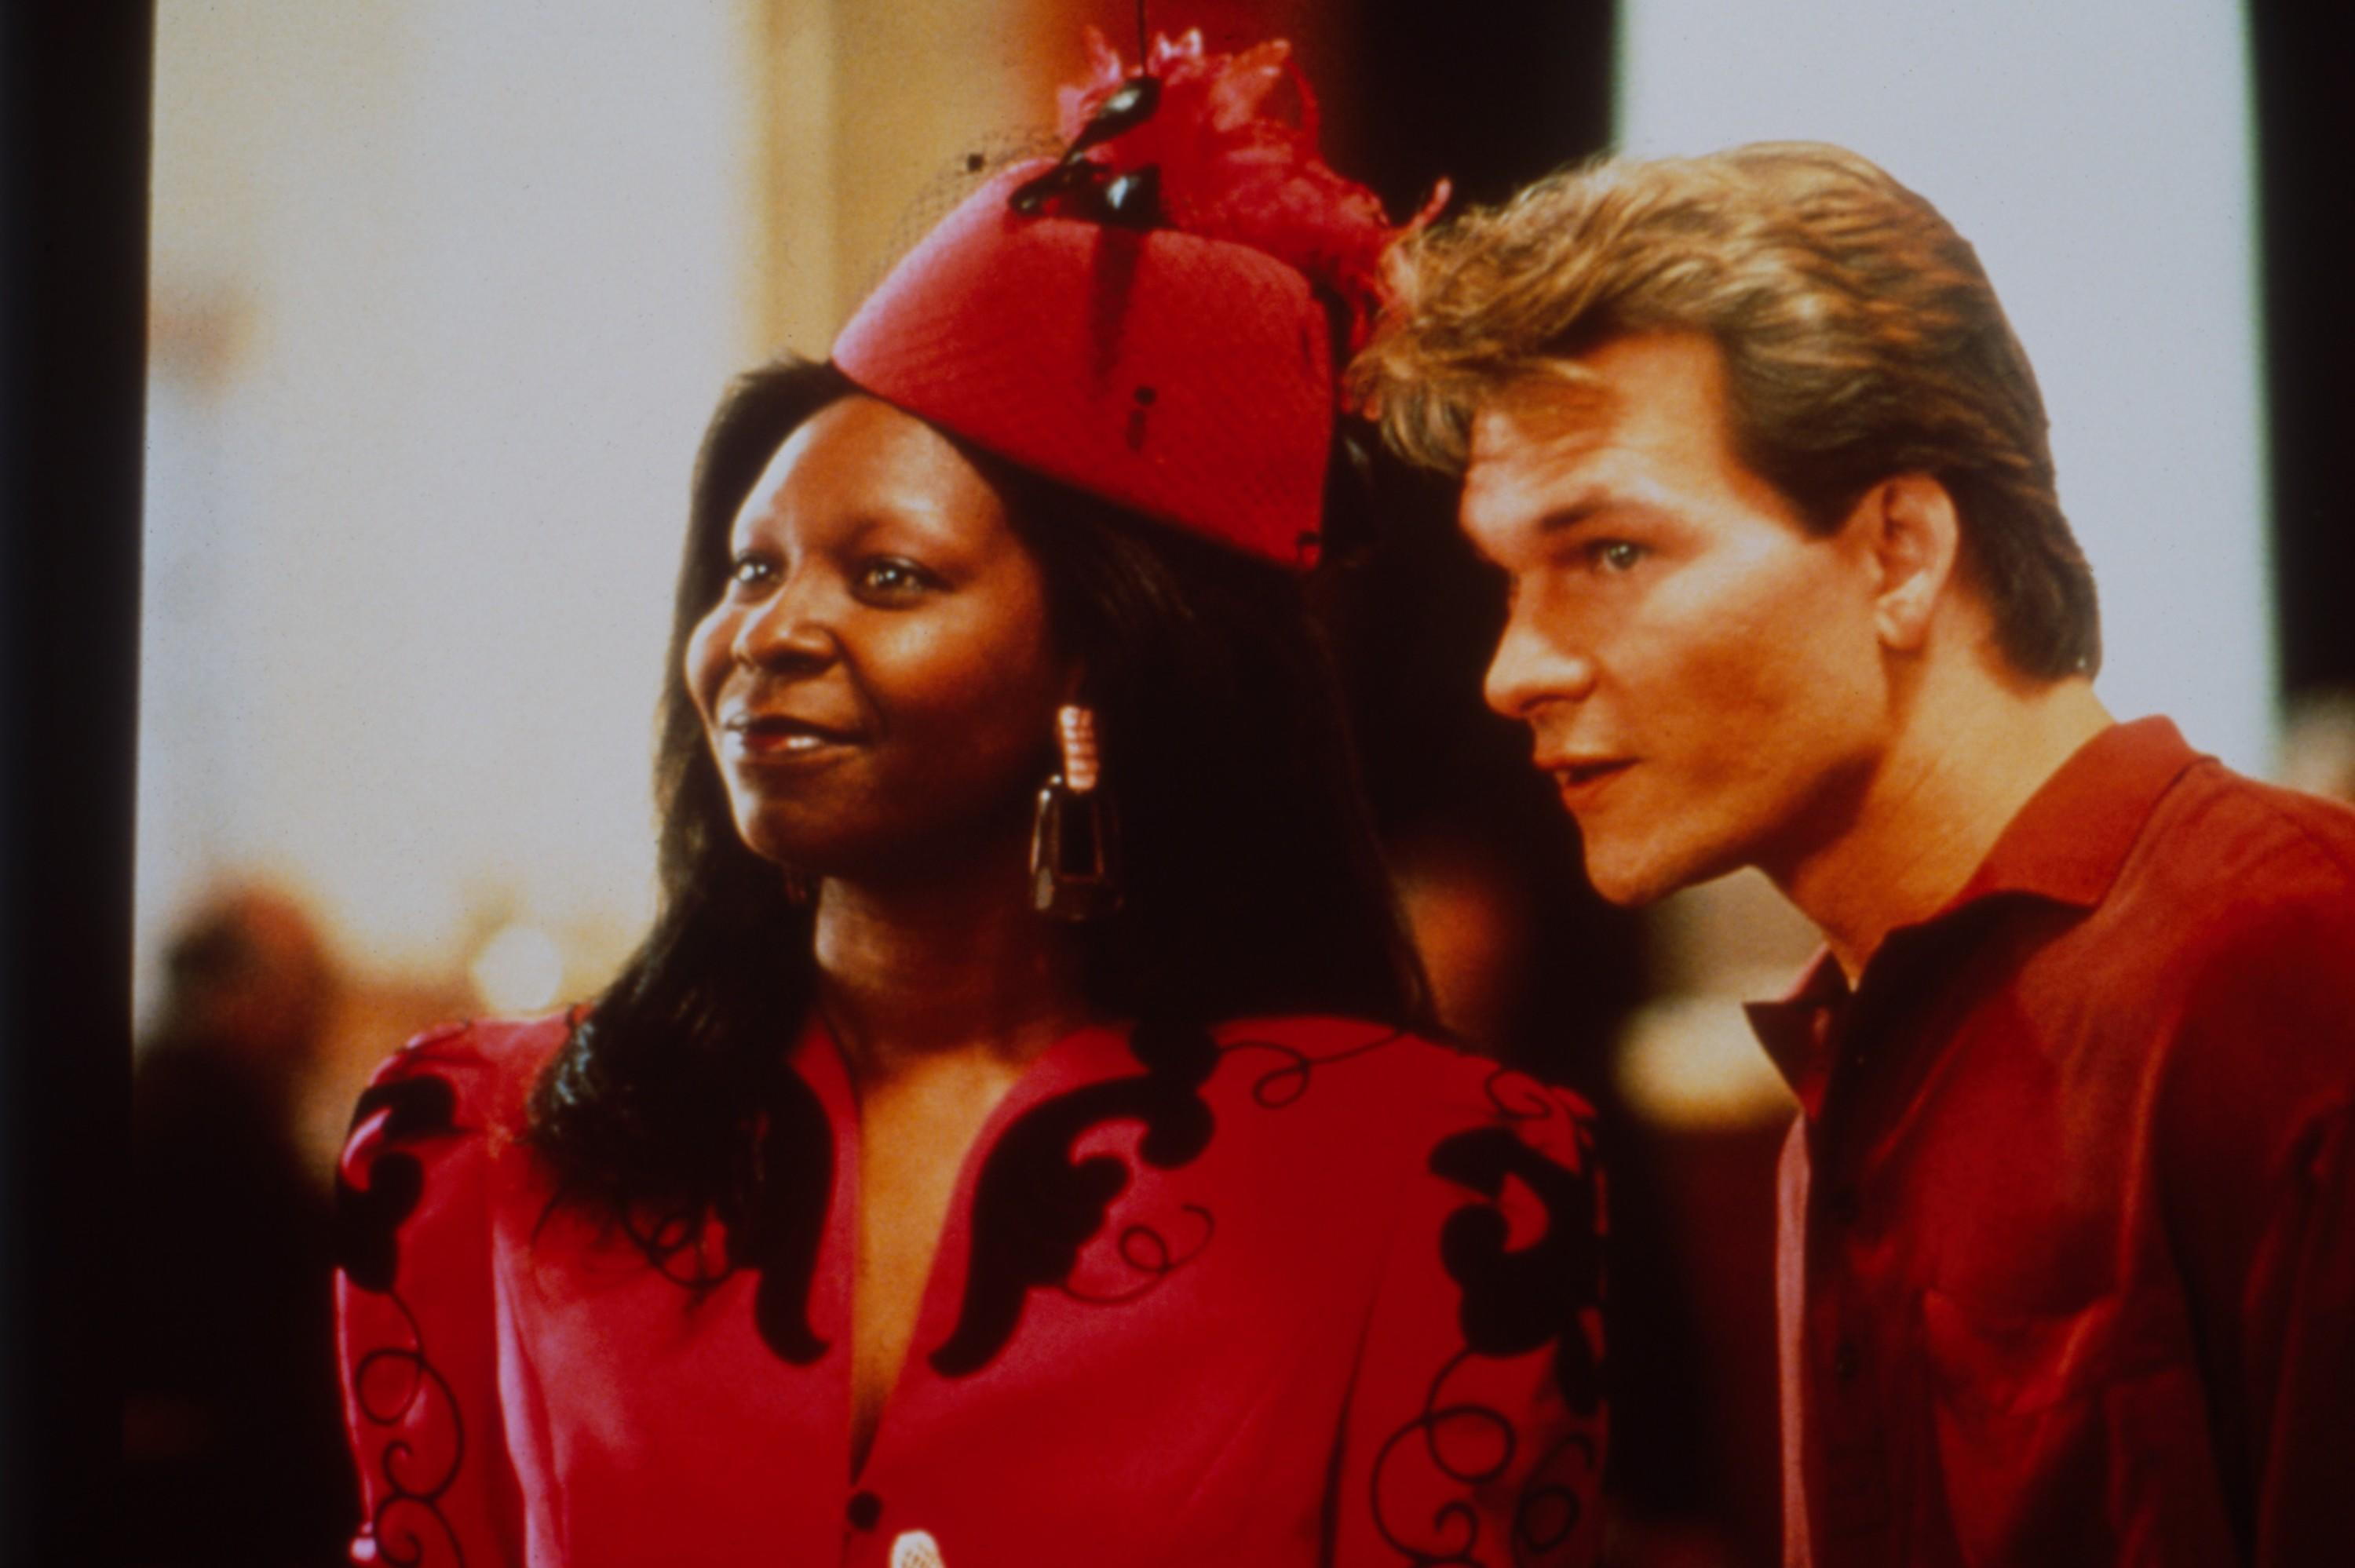 Whoopi Goldberg and Patrick Swayze in Jerry Zucker's 1990 hit, 'Ghost' (Photo: Paramount Pictures / Courtesy Everett Collection)